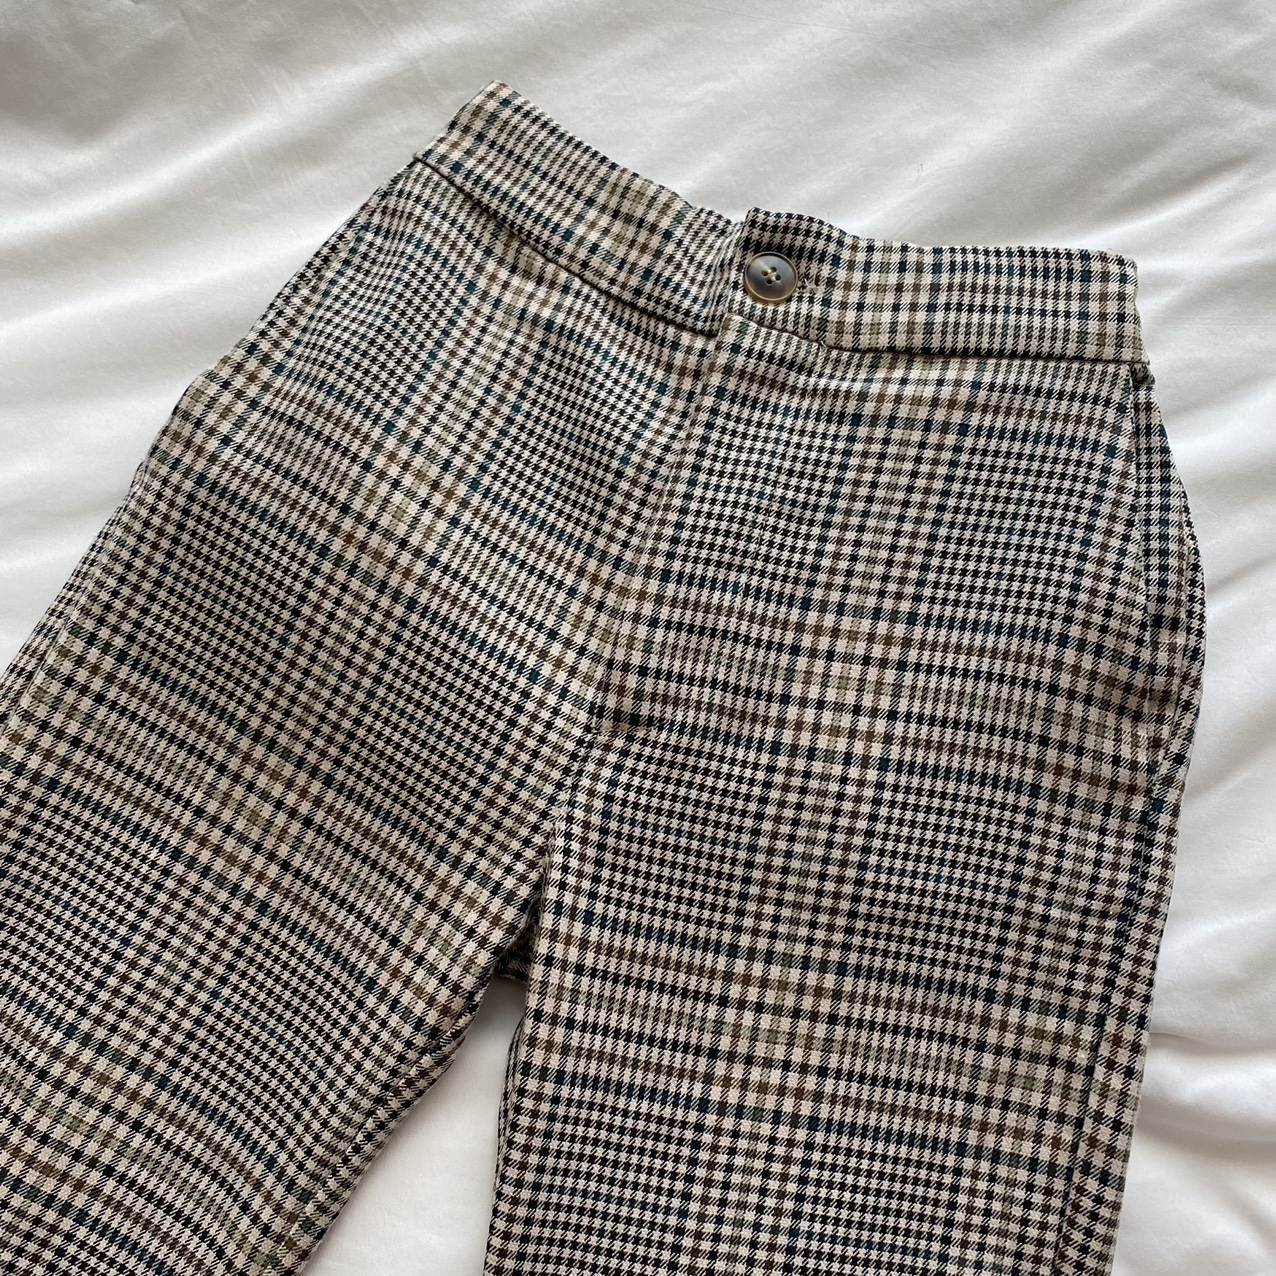 Product Image 1 - Pull and bear beige plaid